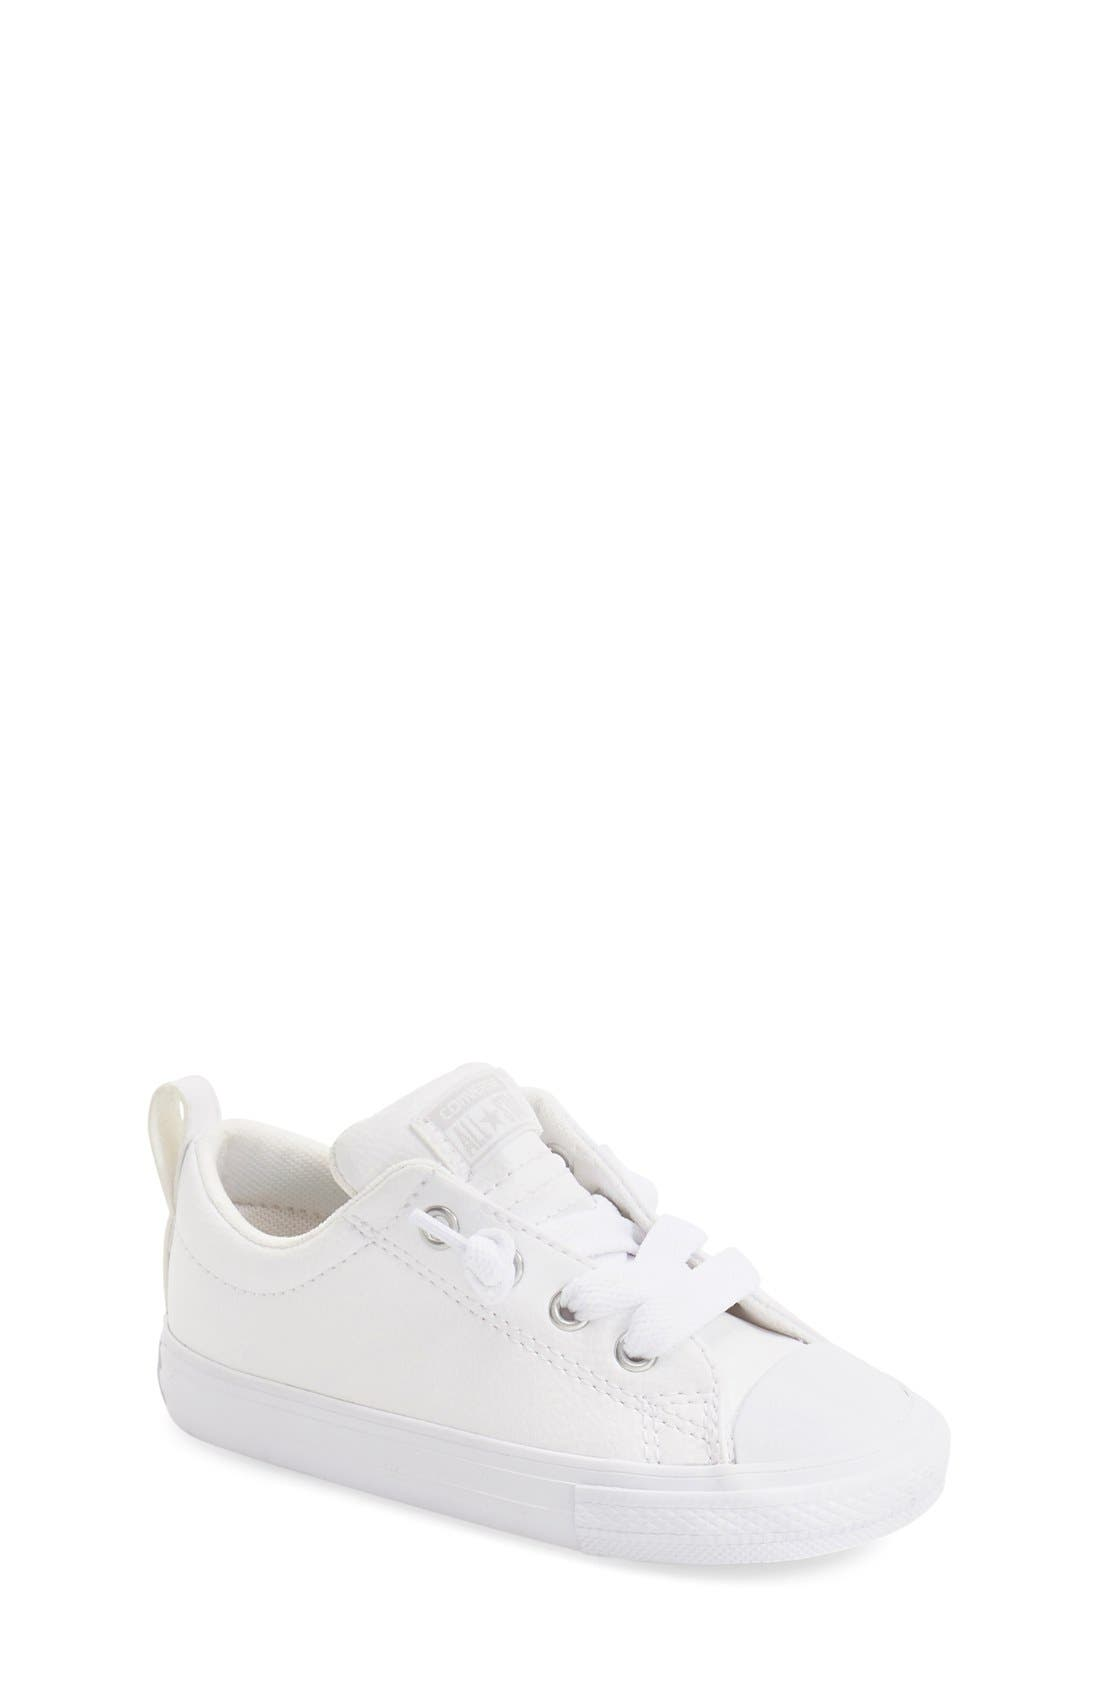 Alternate Image 1 Selected - Converse Chuck Taylor® All Star® Ox Faux Leather Sneaker (Toddler, Little Kid & Big Kid)